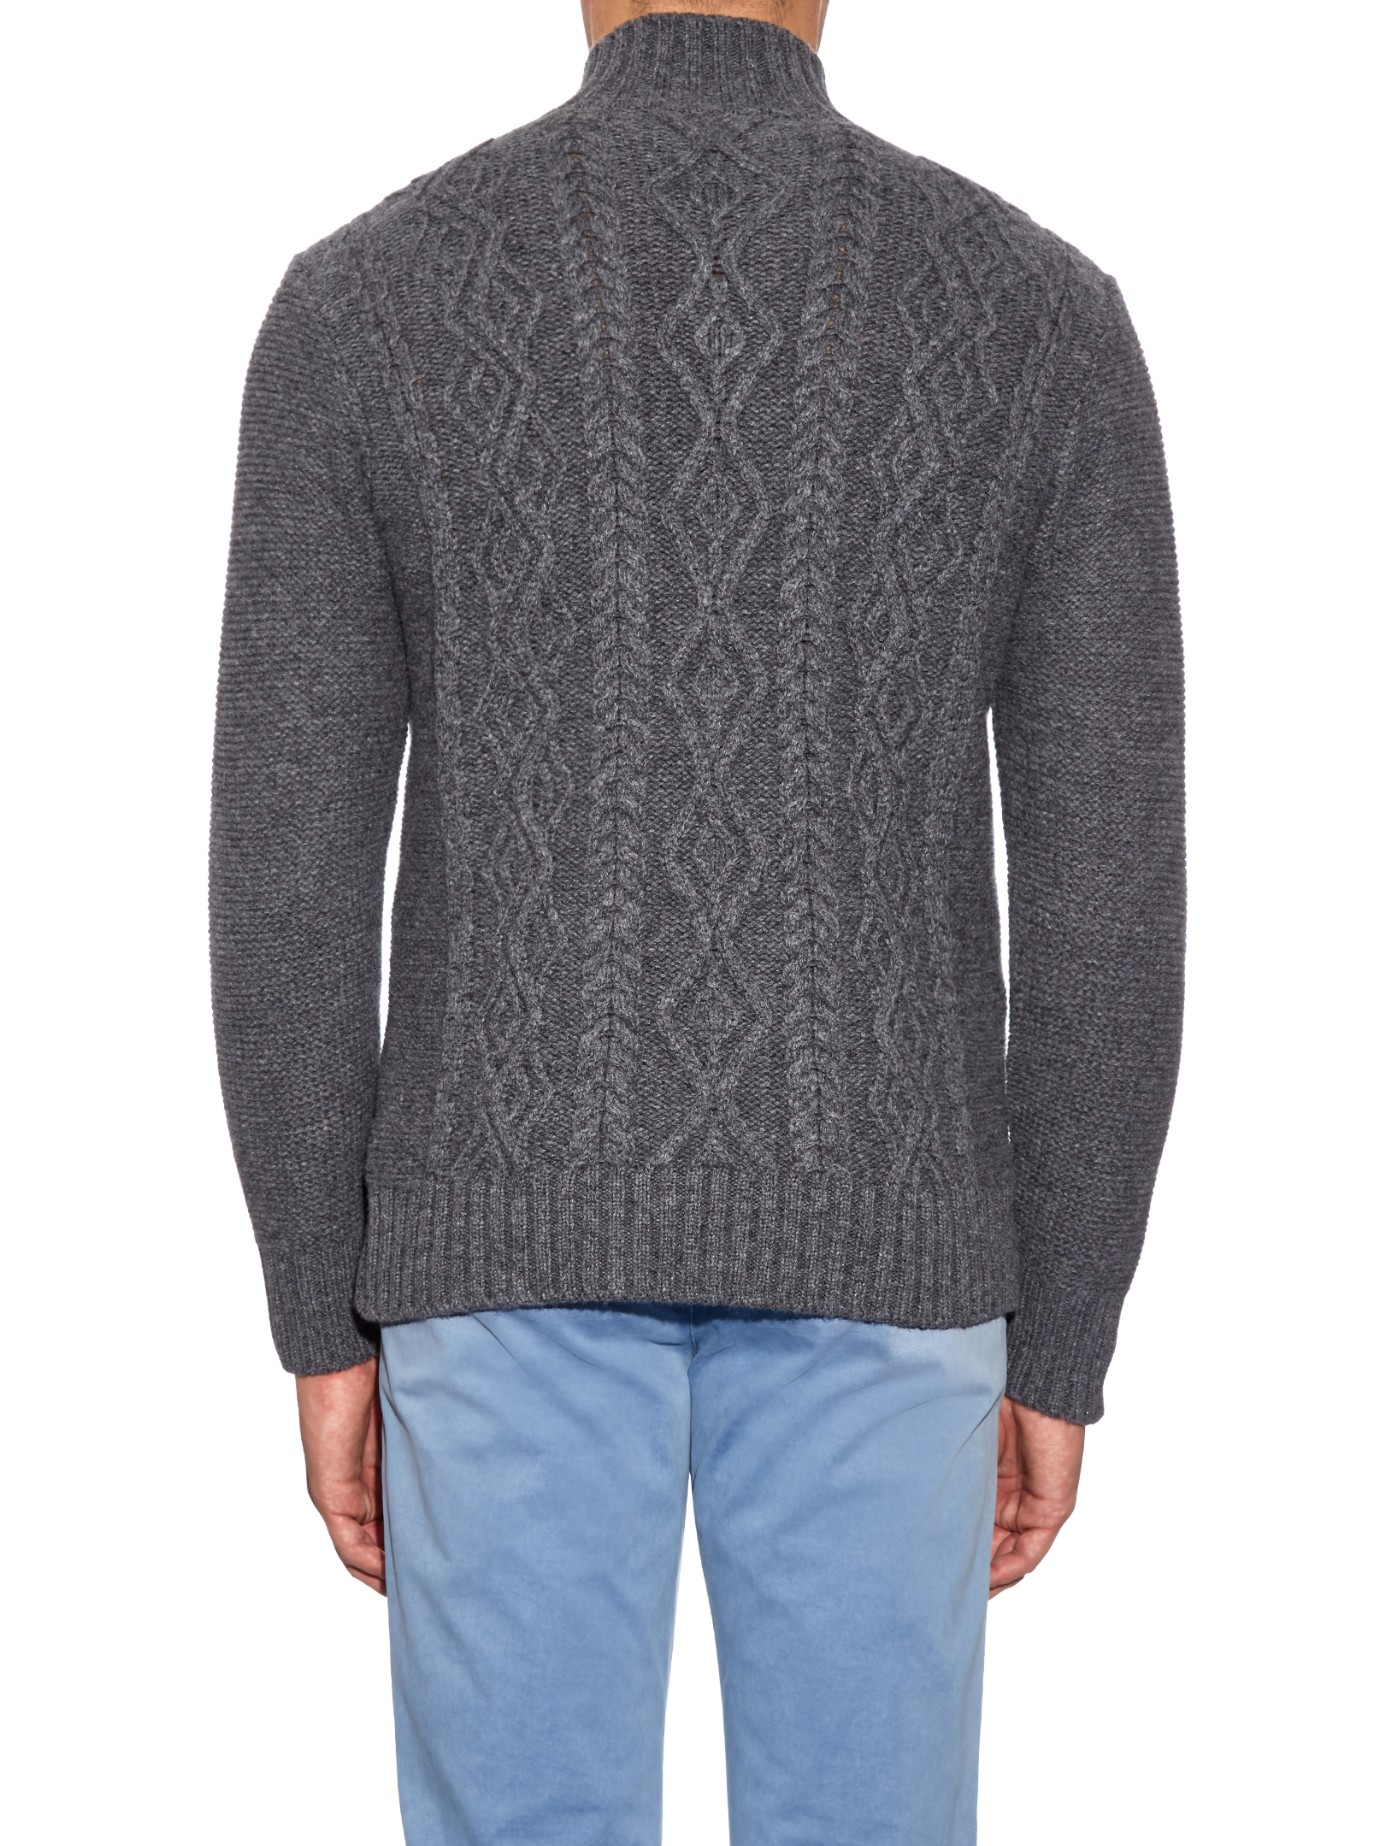 Inis me in aran knit merino wool sweater in gray for men for Inis crafts ireland sweater